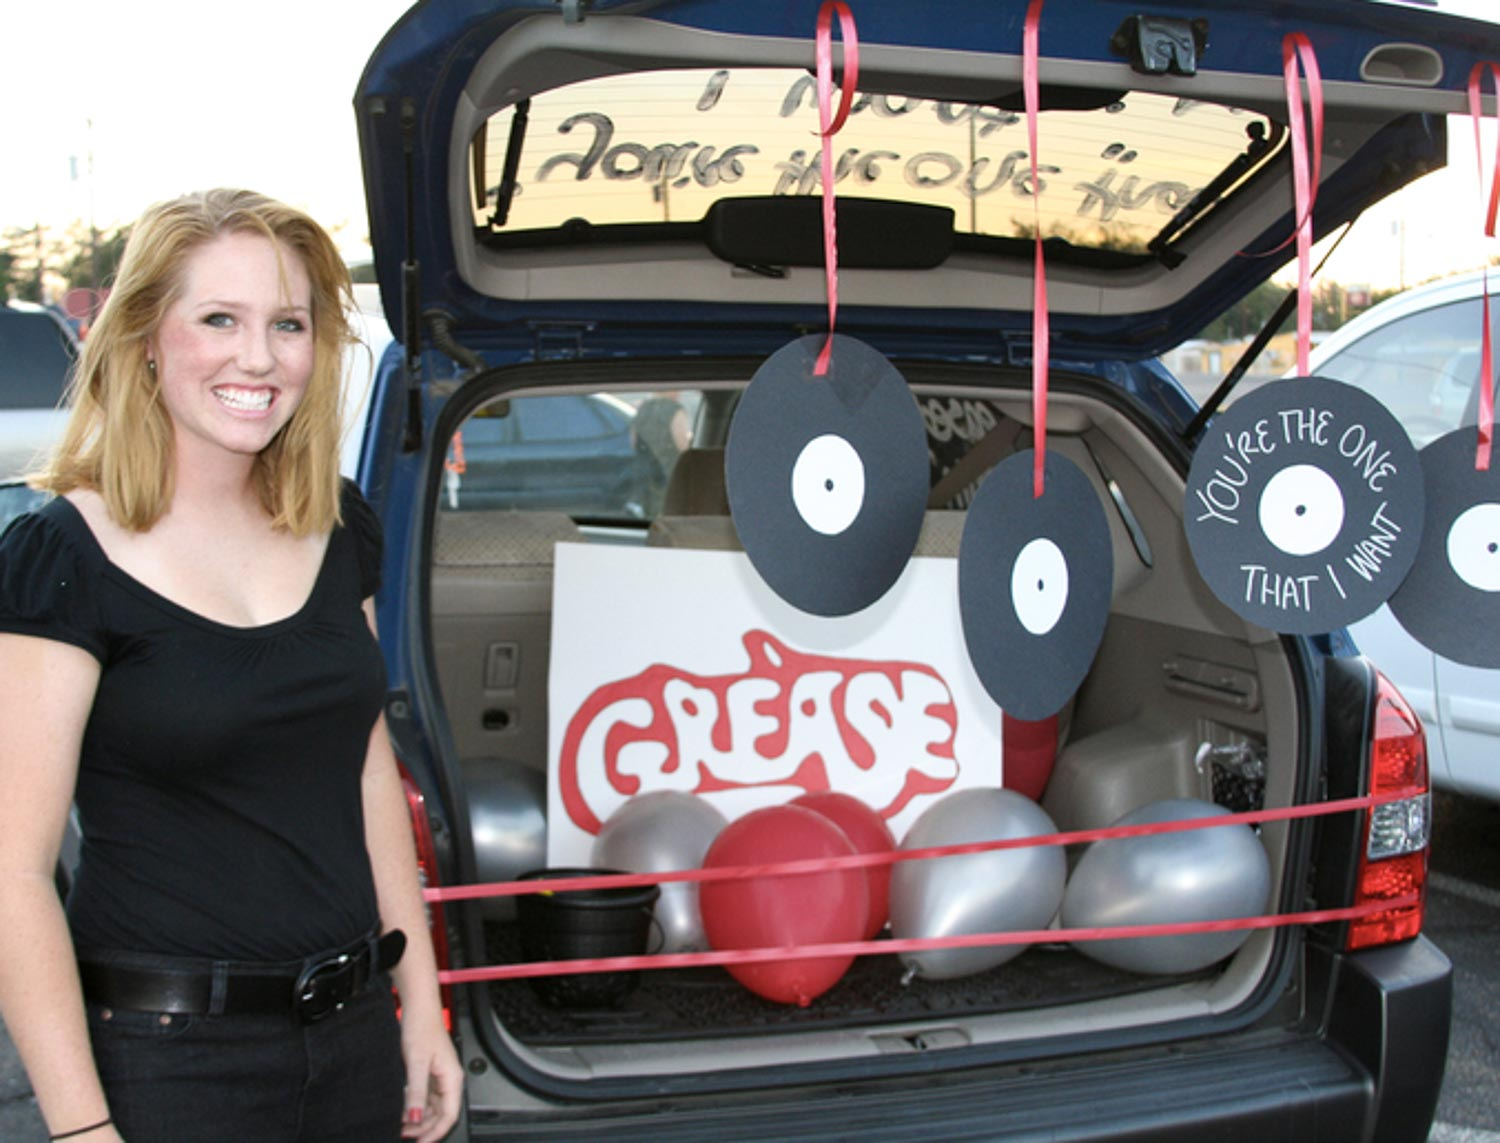 An open car trunk with records hanging down with a Grease sign and balloons in it with a girl in black next to it.